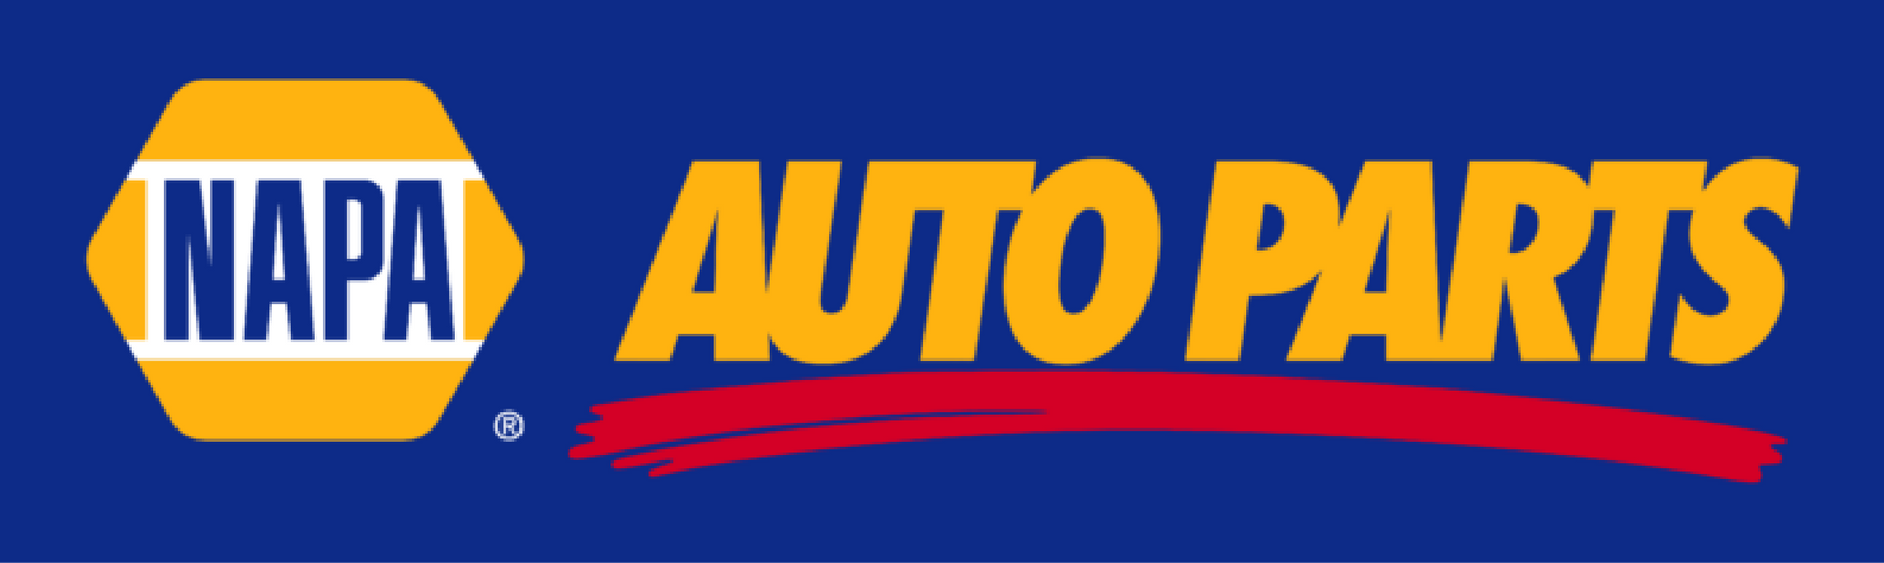 Napa_Auto_Parts_Logo_full-700x209.png